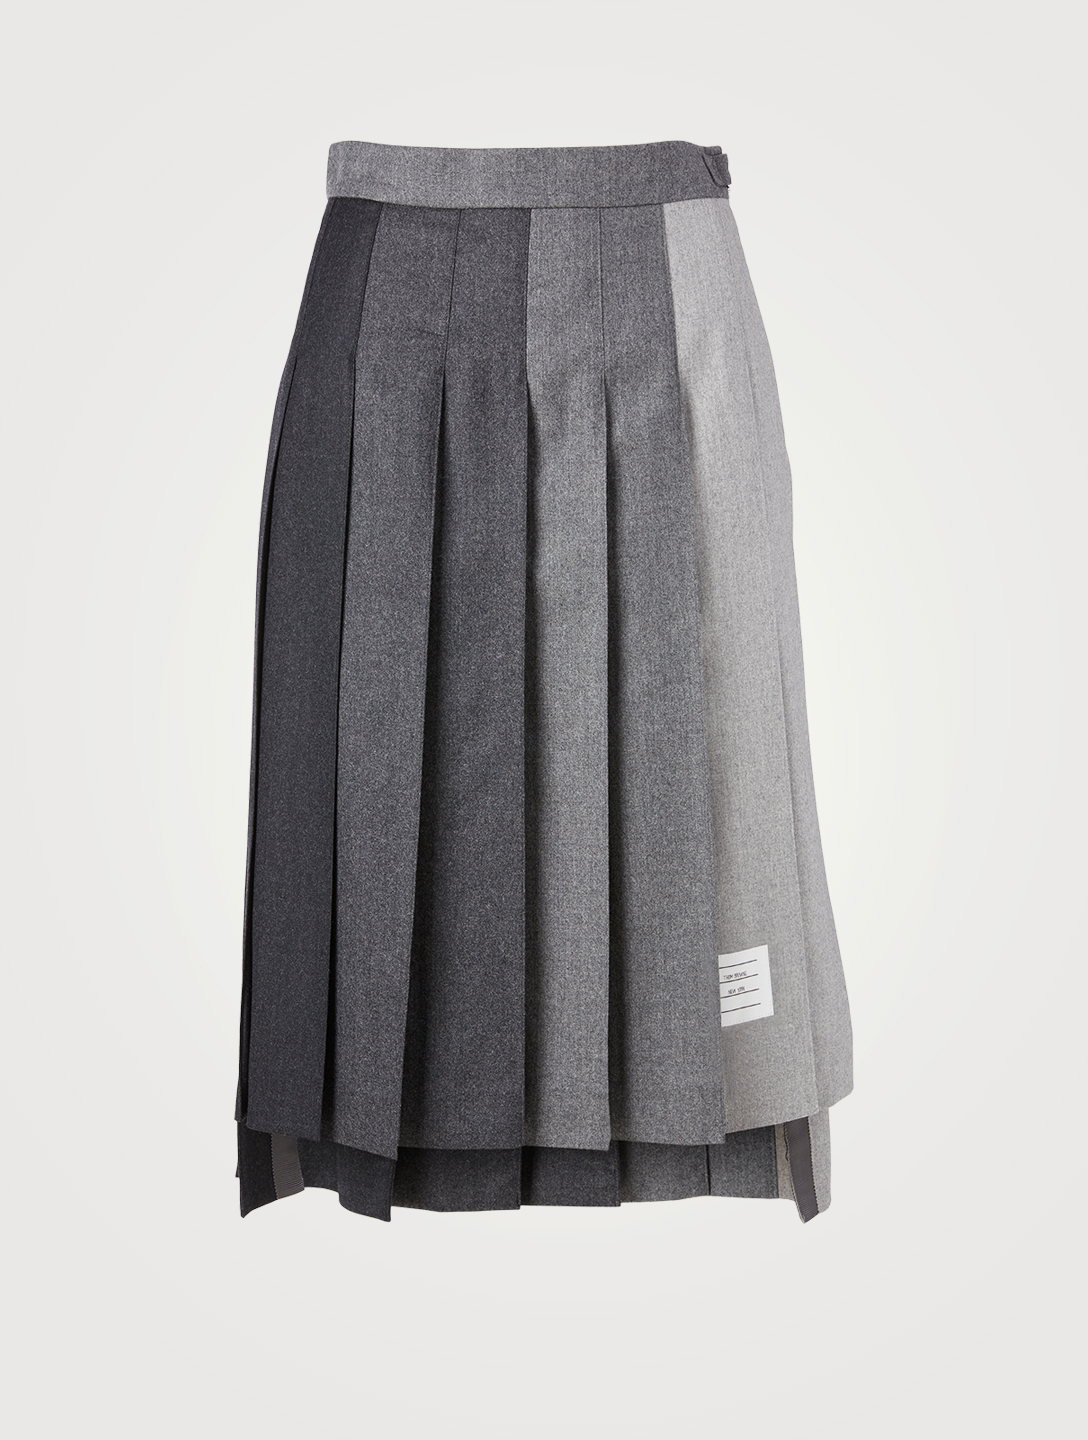 THOM BROWNE Wool Pleated Midi Skirt In Funmix Print Women's Grey